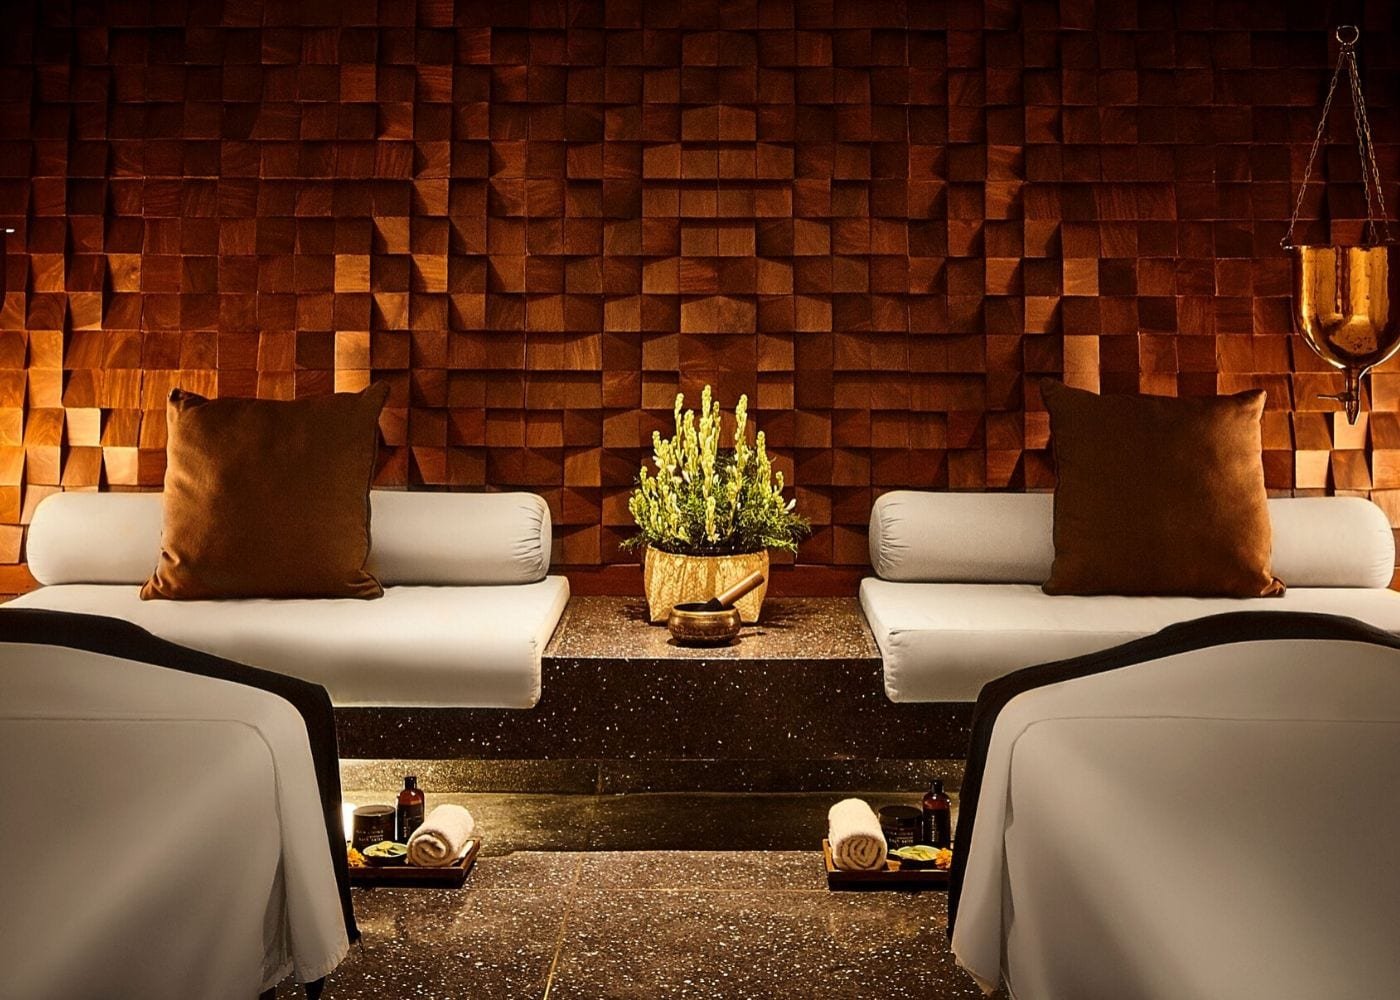 Two massage beds for couples at Spa Alila at Alila Seminyak